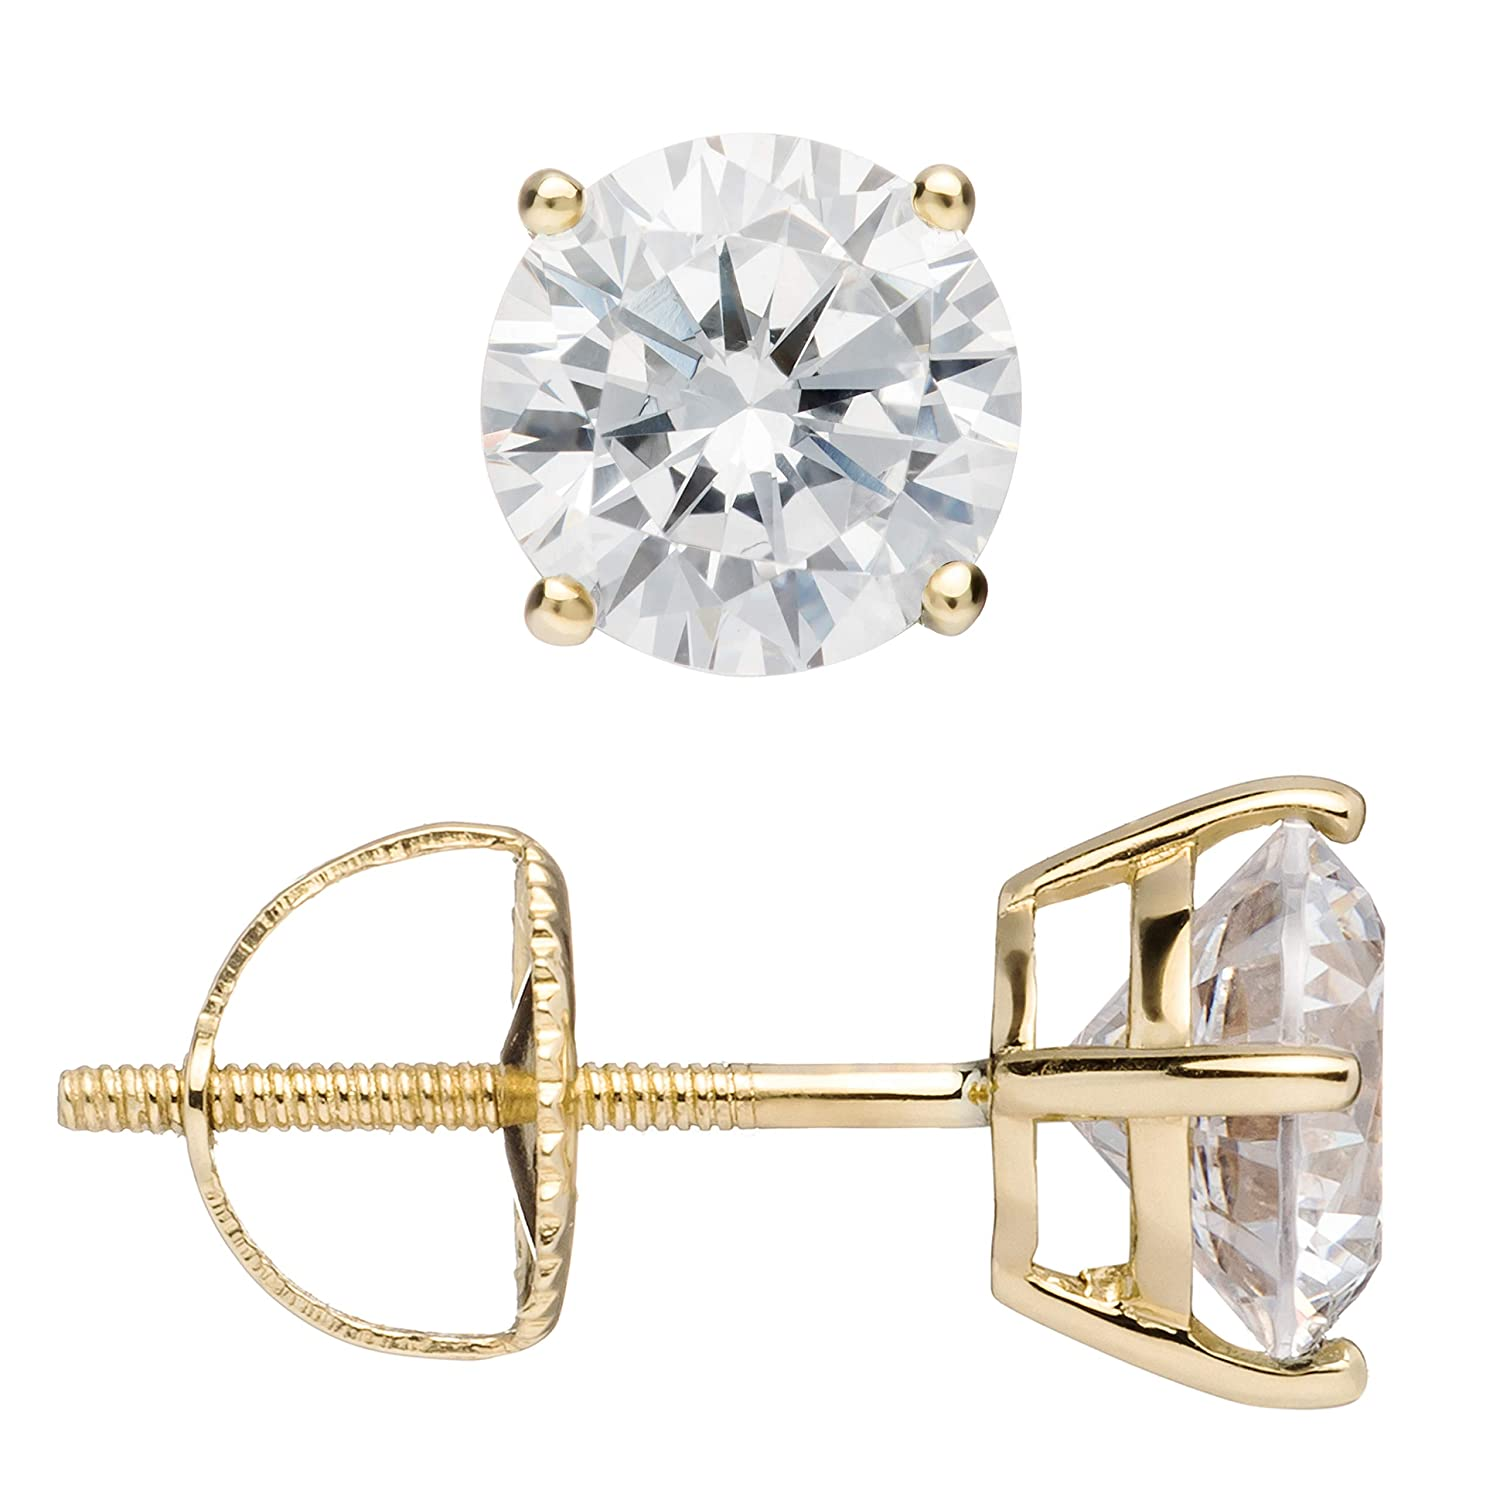 14K Solid Yellow Gold Stud Earrings | Round Cut Cubic Zirconia | Screw Back Posts | .50 to 4.0 CTW | With Gift Box Everyday Elegance YRABC E022/10